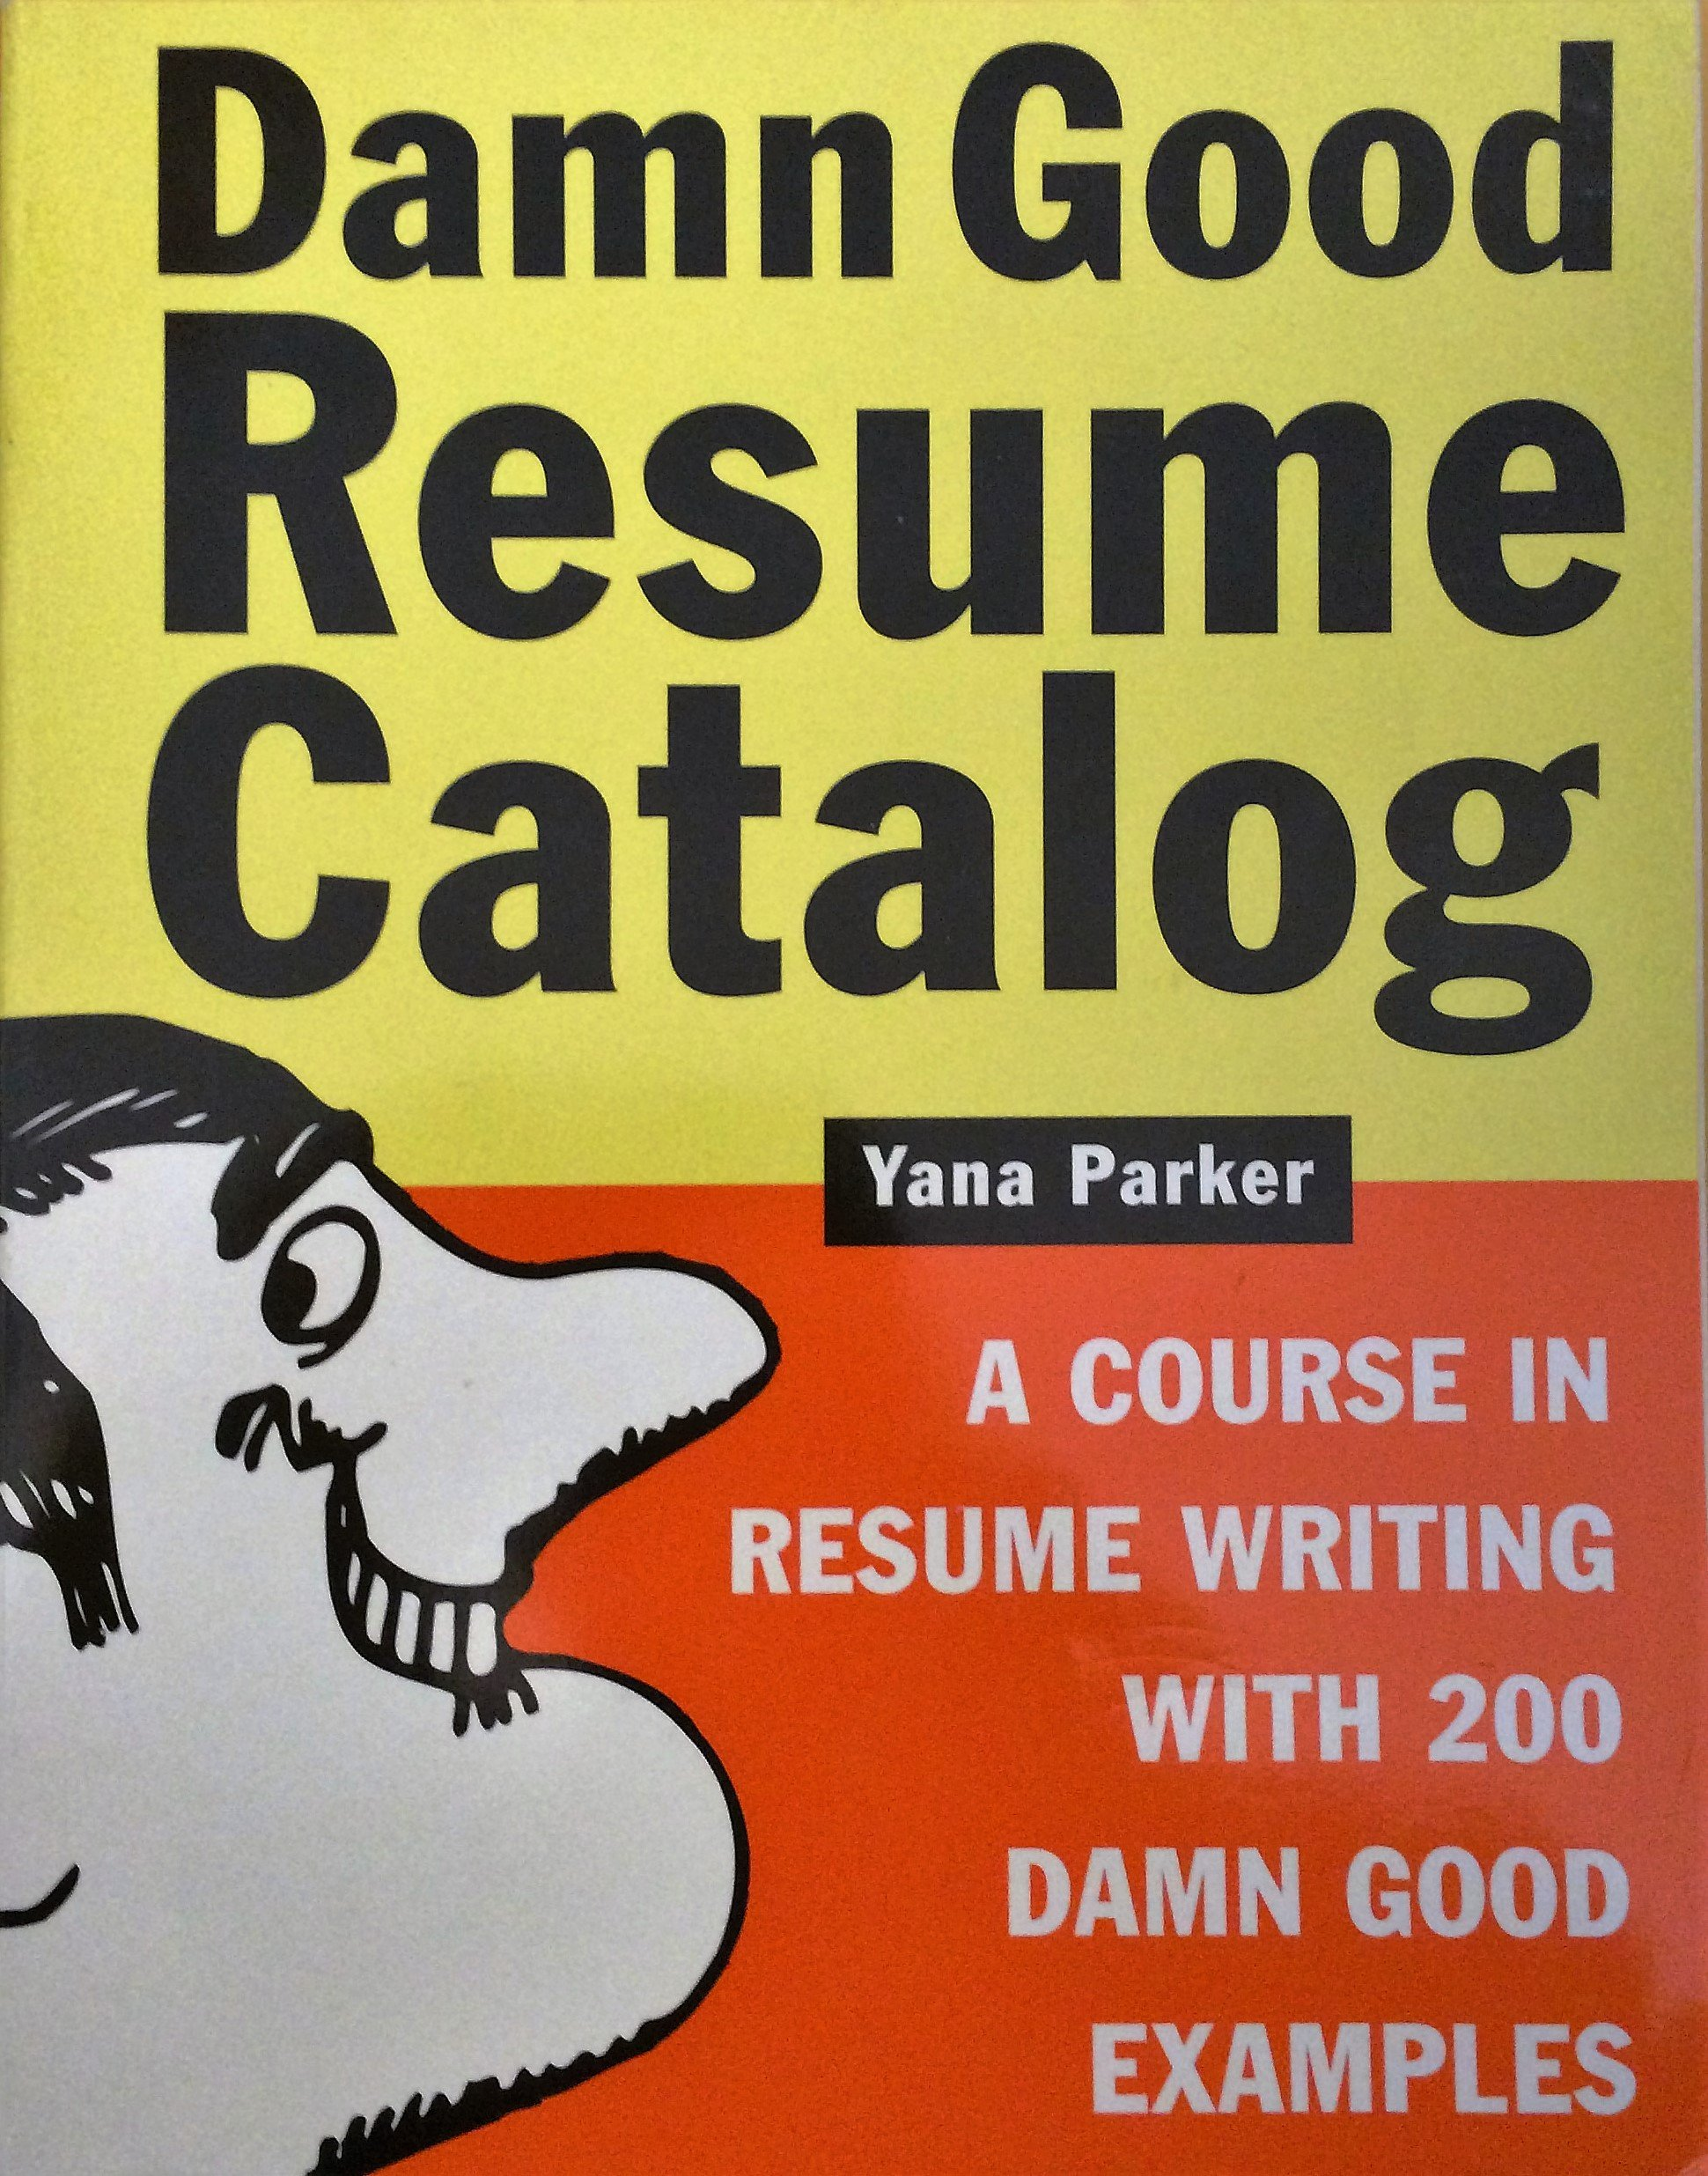 Damn Good Resume Catalog (Damn Good Resume Catalog A Course in Resume Writing with 200 Damn Good Exa Special edition by Yana Parker (2002) Paperback